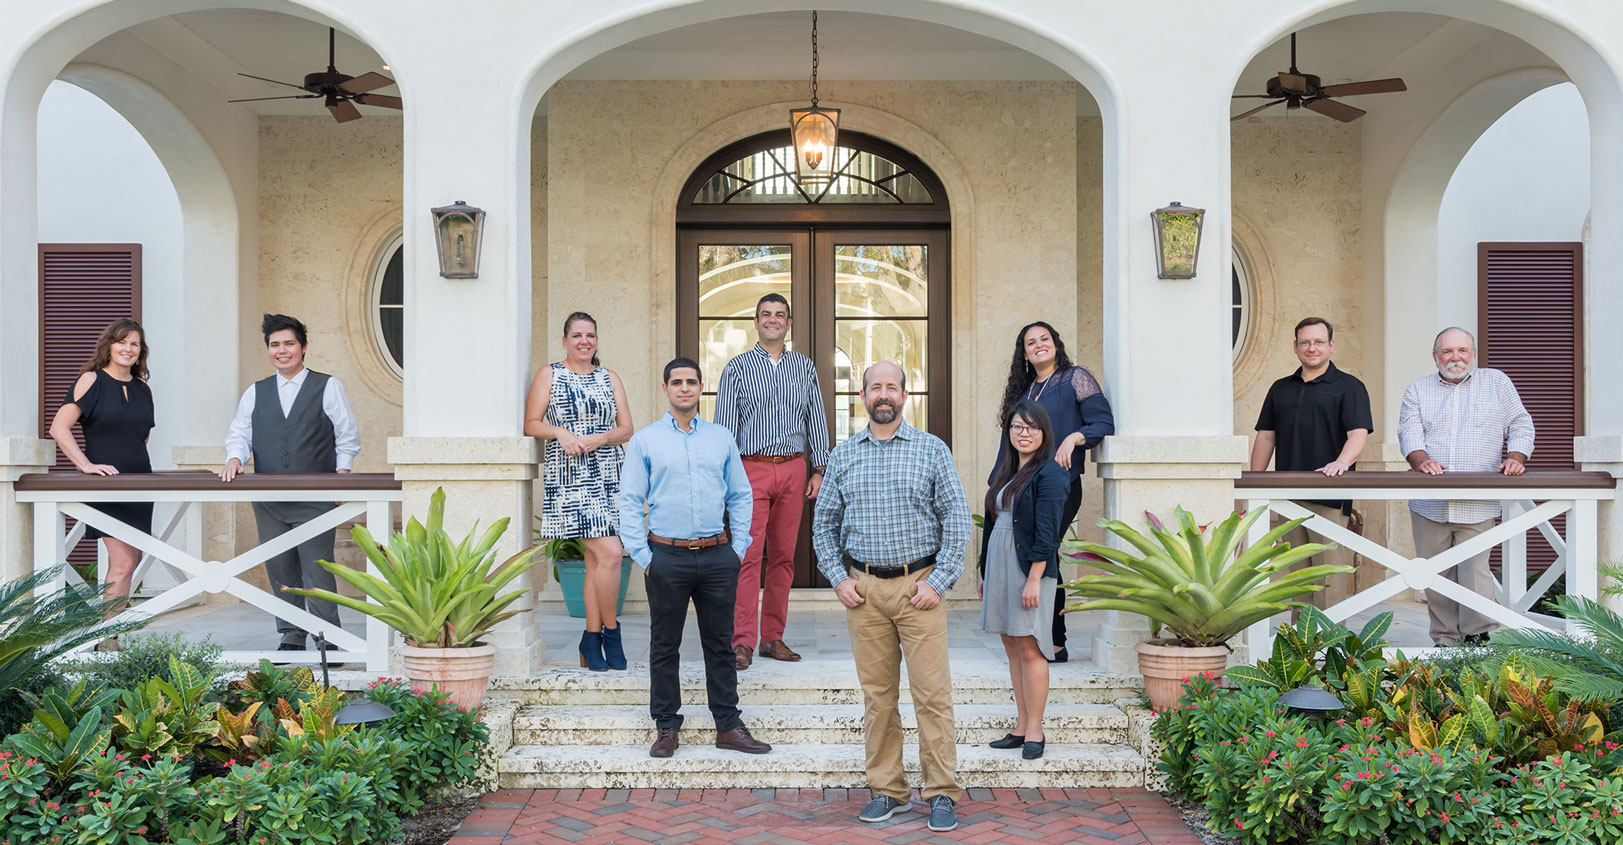 The Kukk Architecture and Design Team | Architectural Firm Naples, Florida